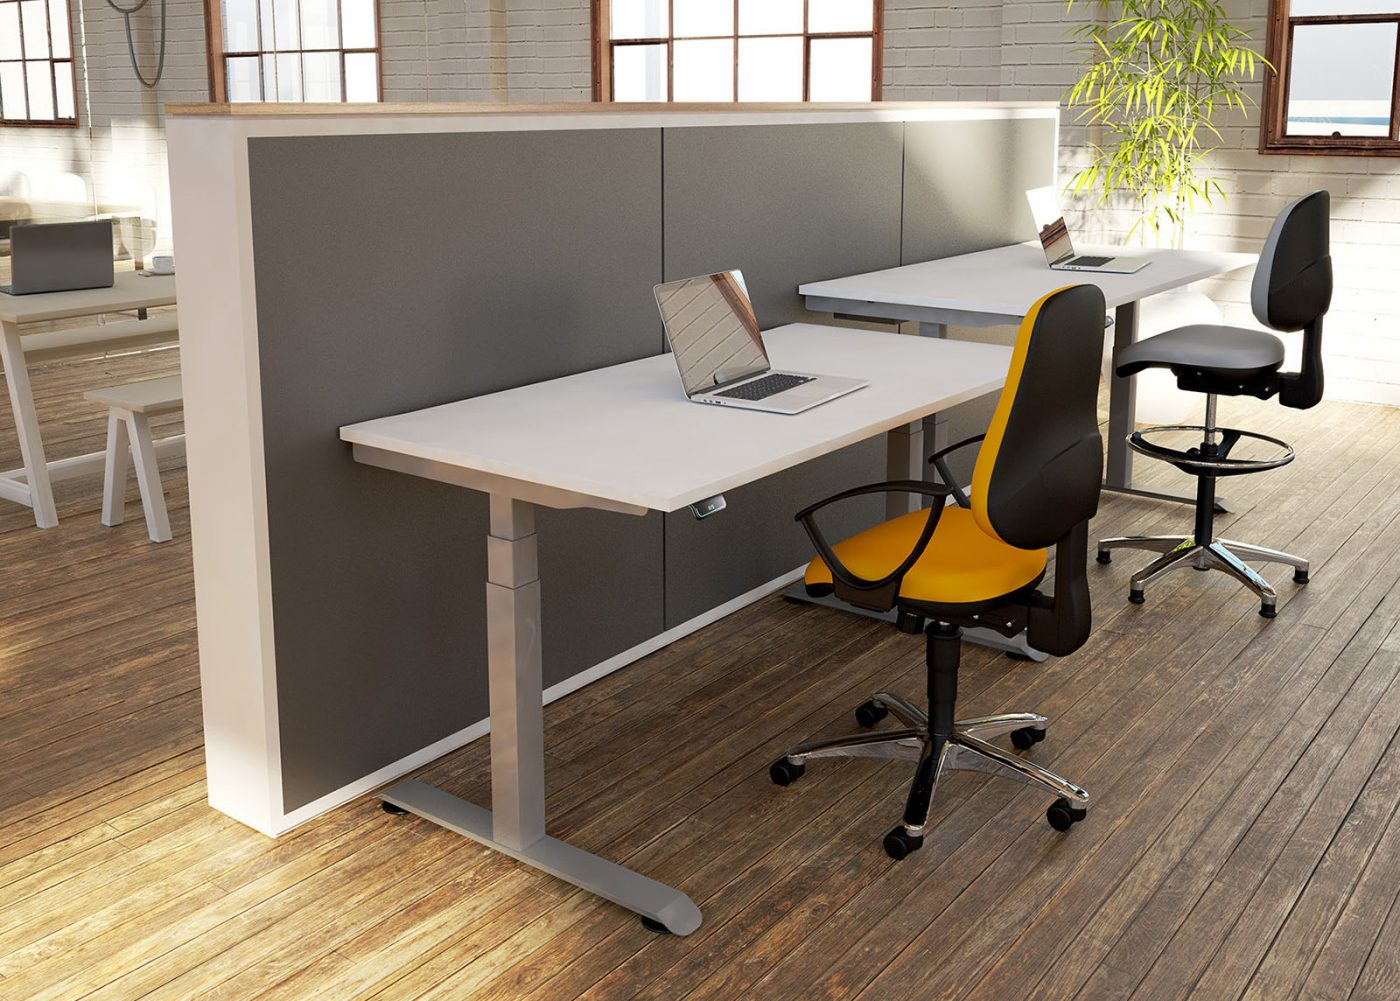 single desk, height adjustable, sit stand desk, silver frame, white finish